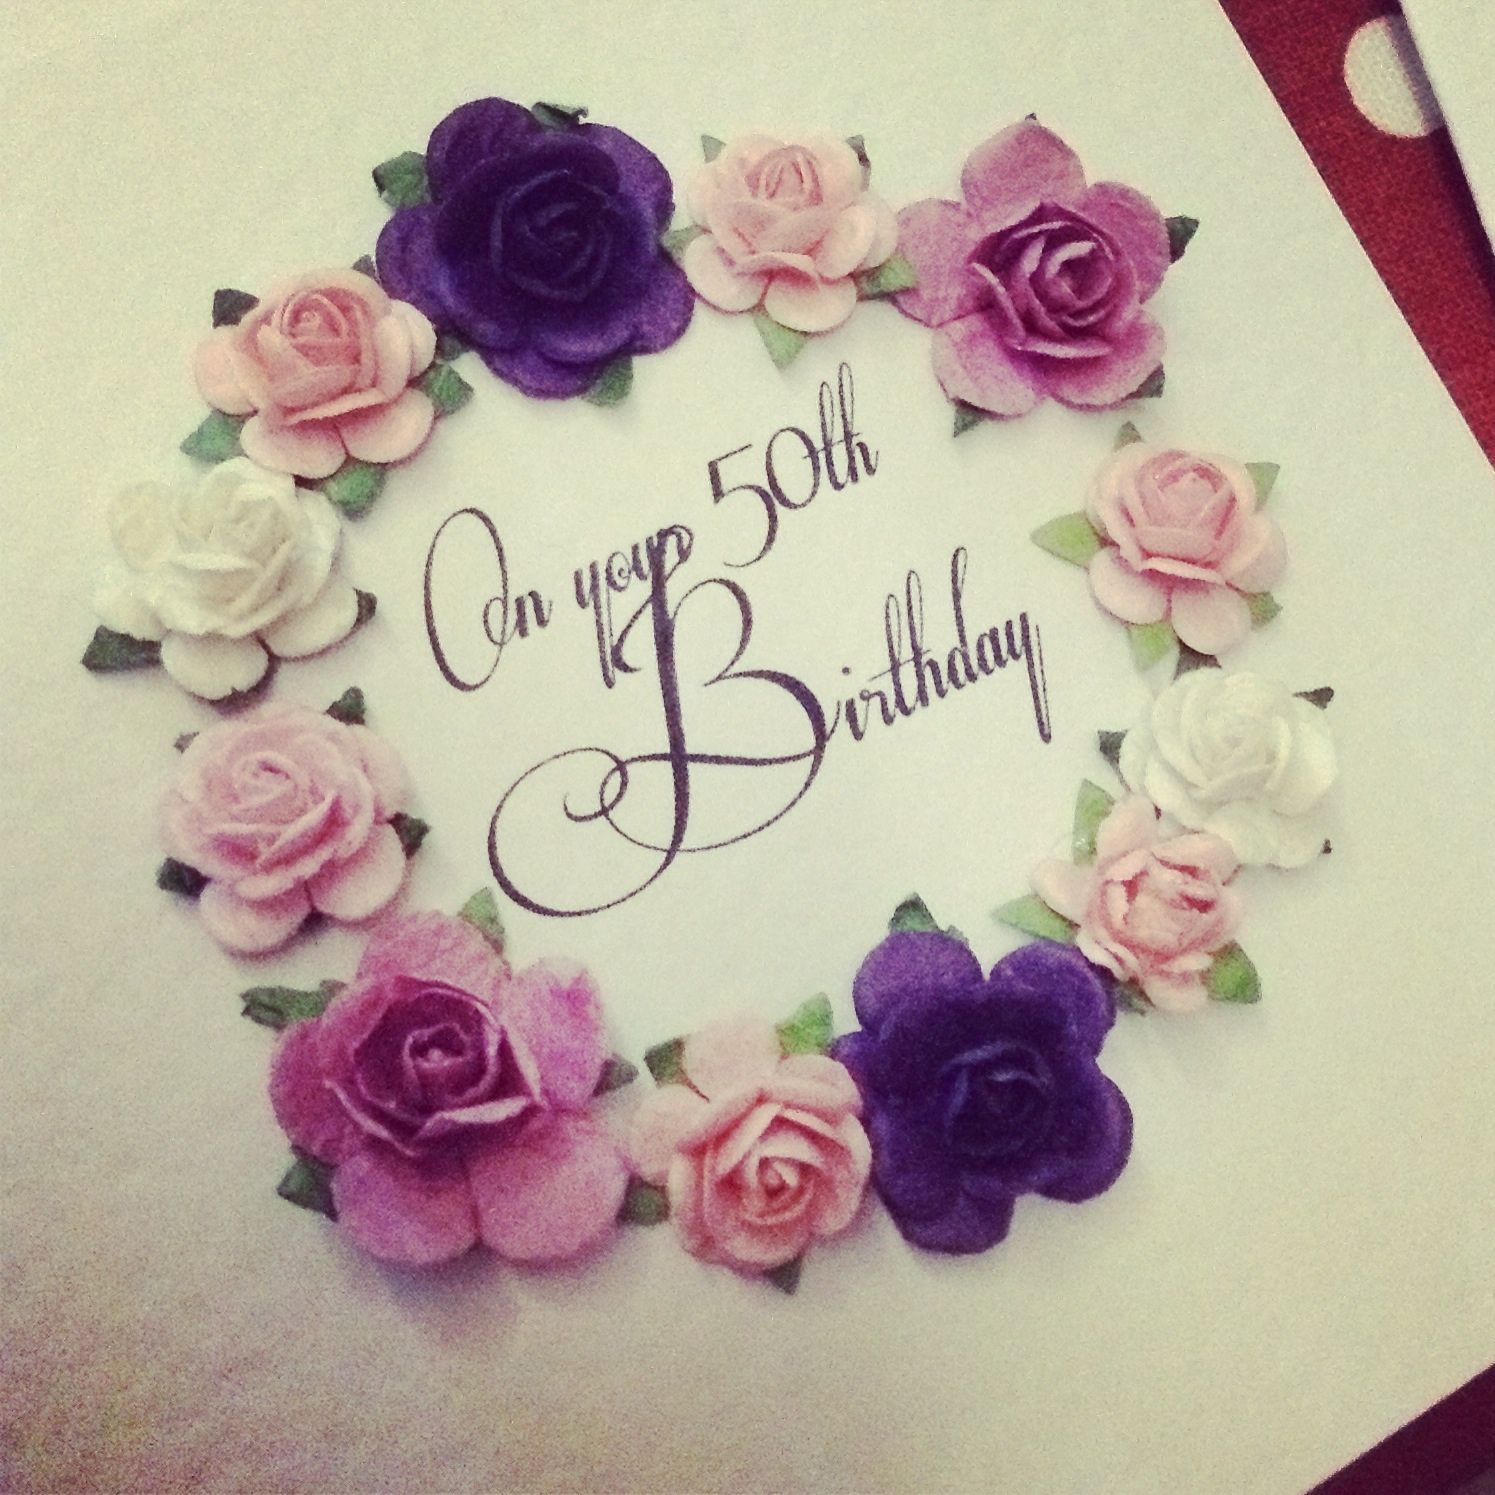 Handmade Happy 50th Birthday greeting card by OSONiA Designs using